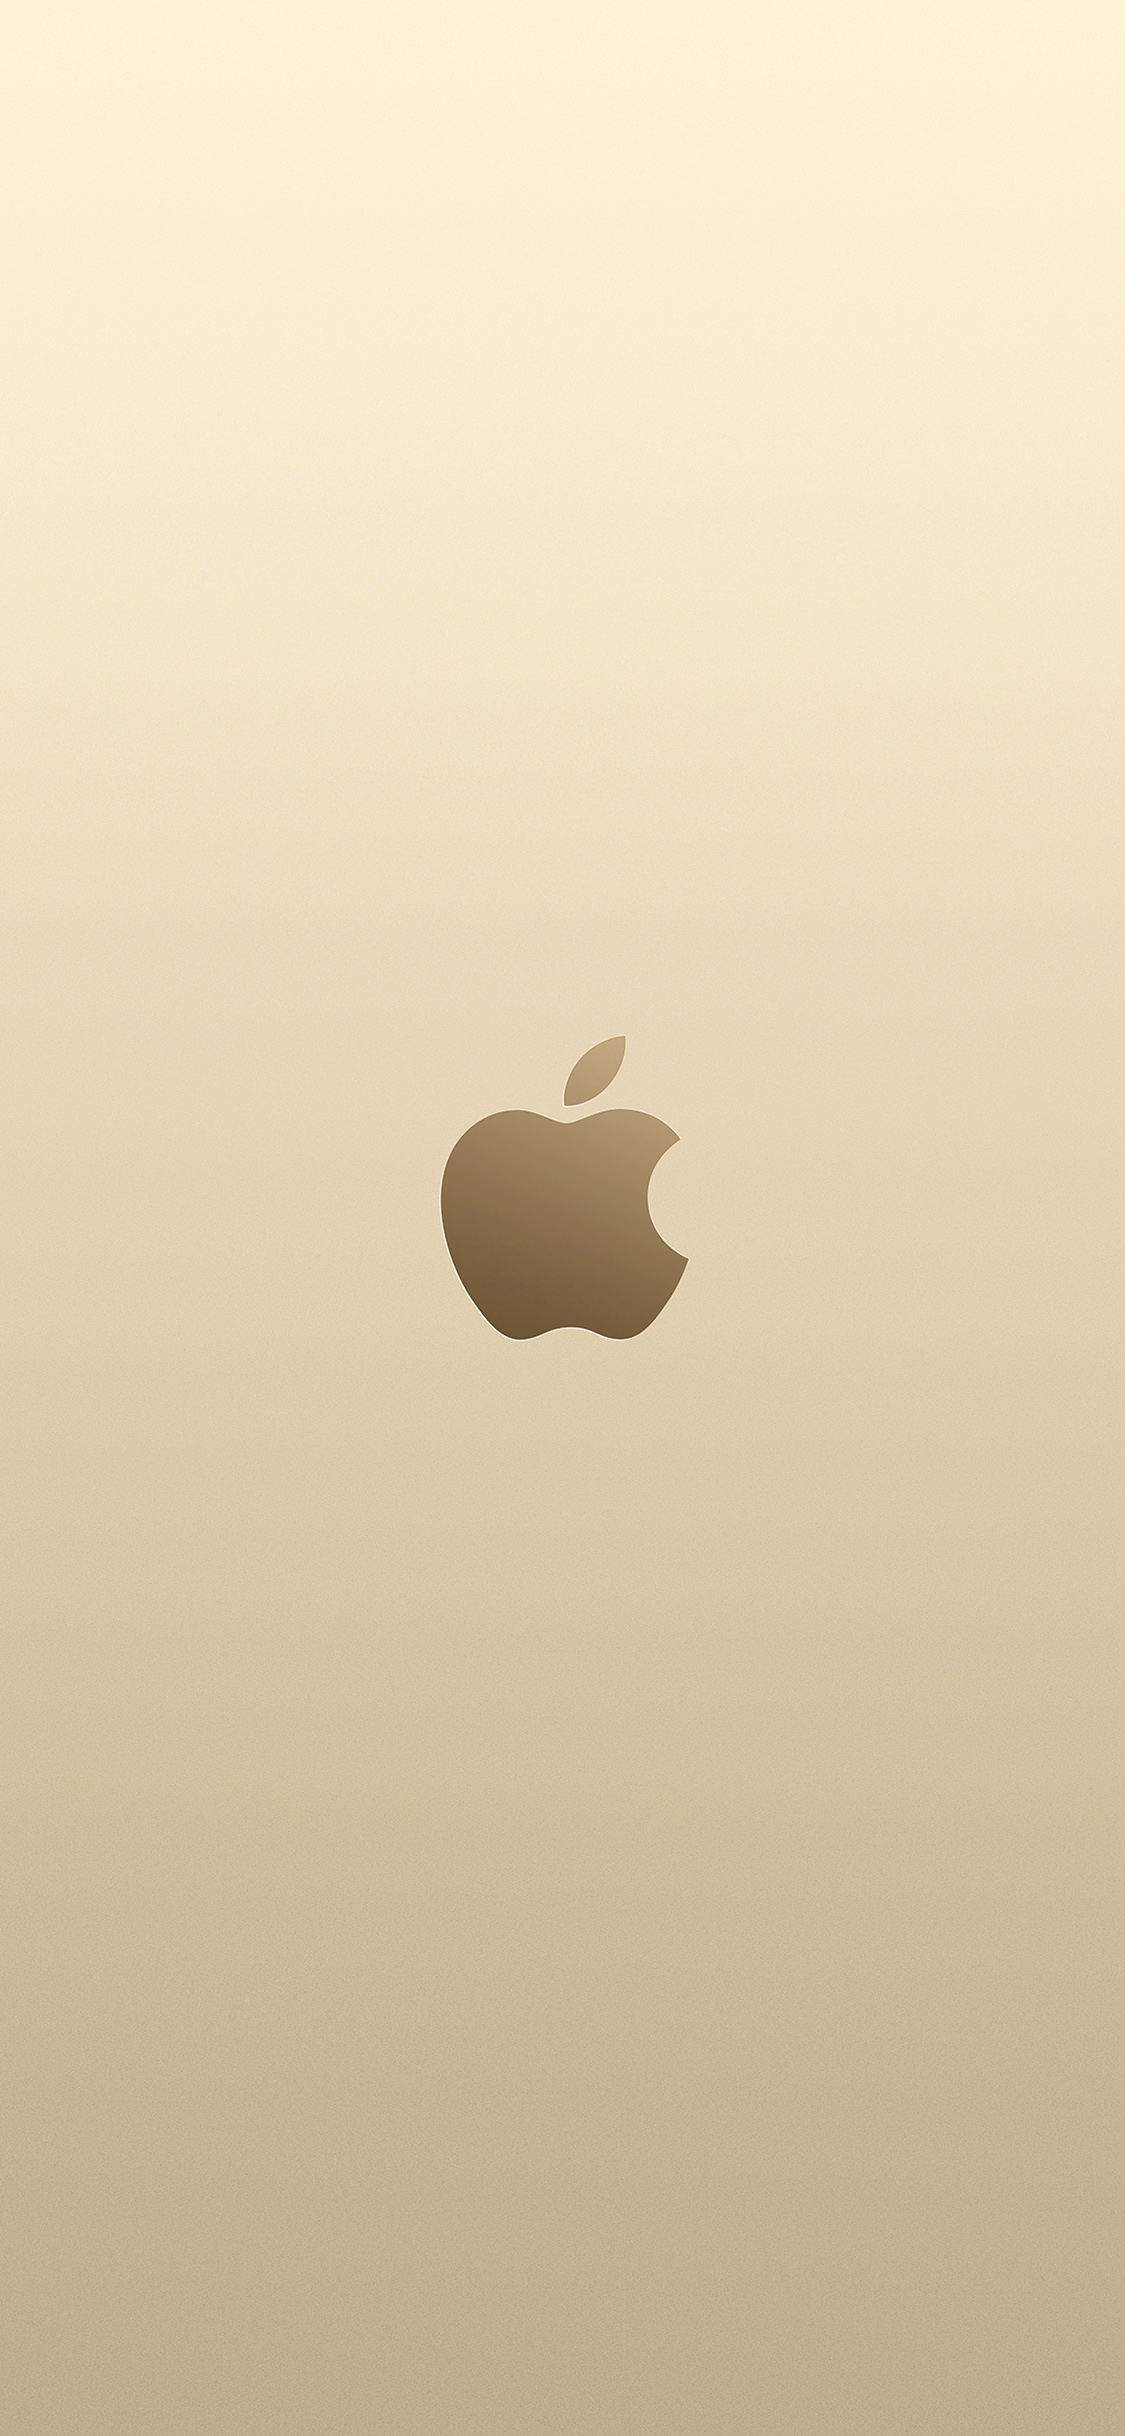 Mac Pro Fall Wallpaper 2017 Papers Co Iphone Wallpaper Au12 Apple Pink Yellow Gold